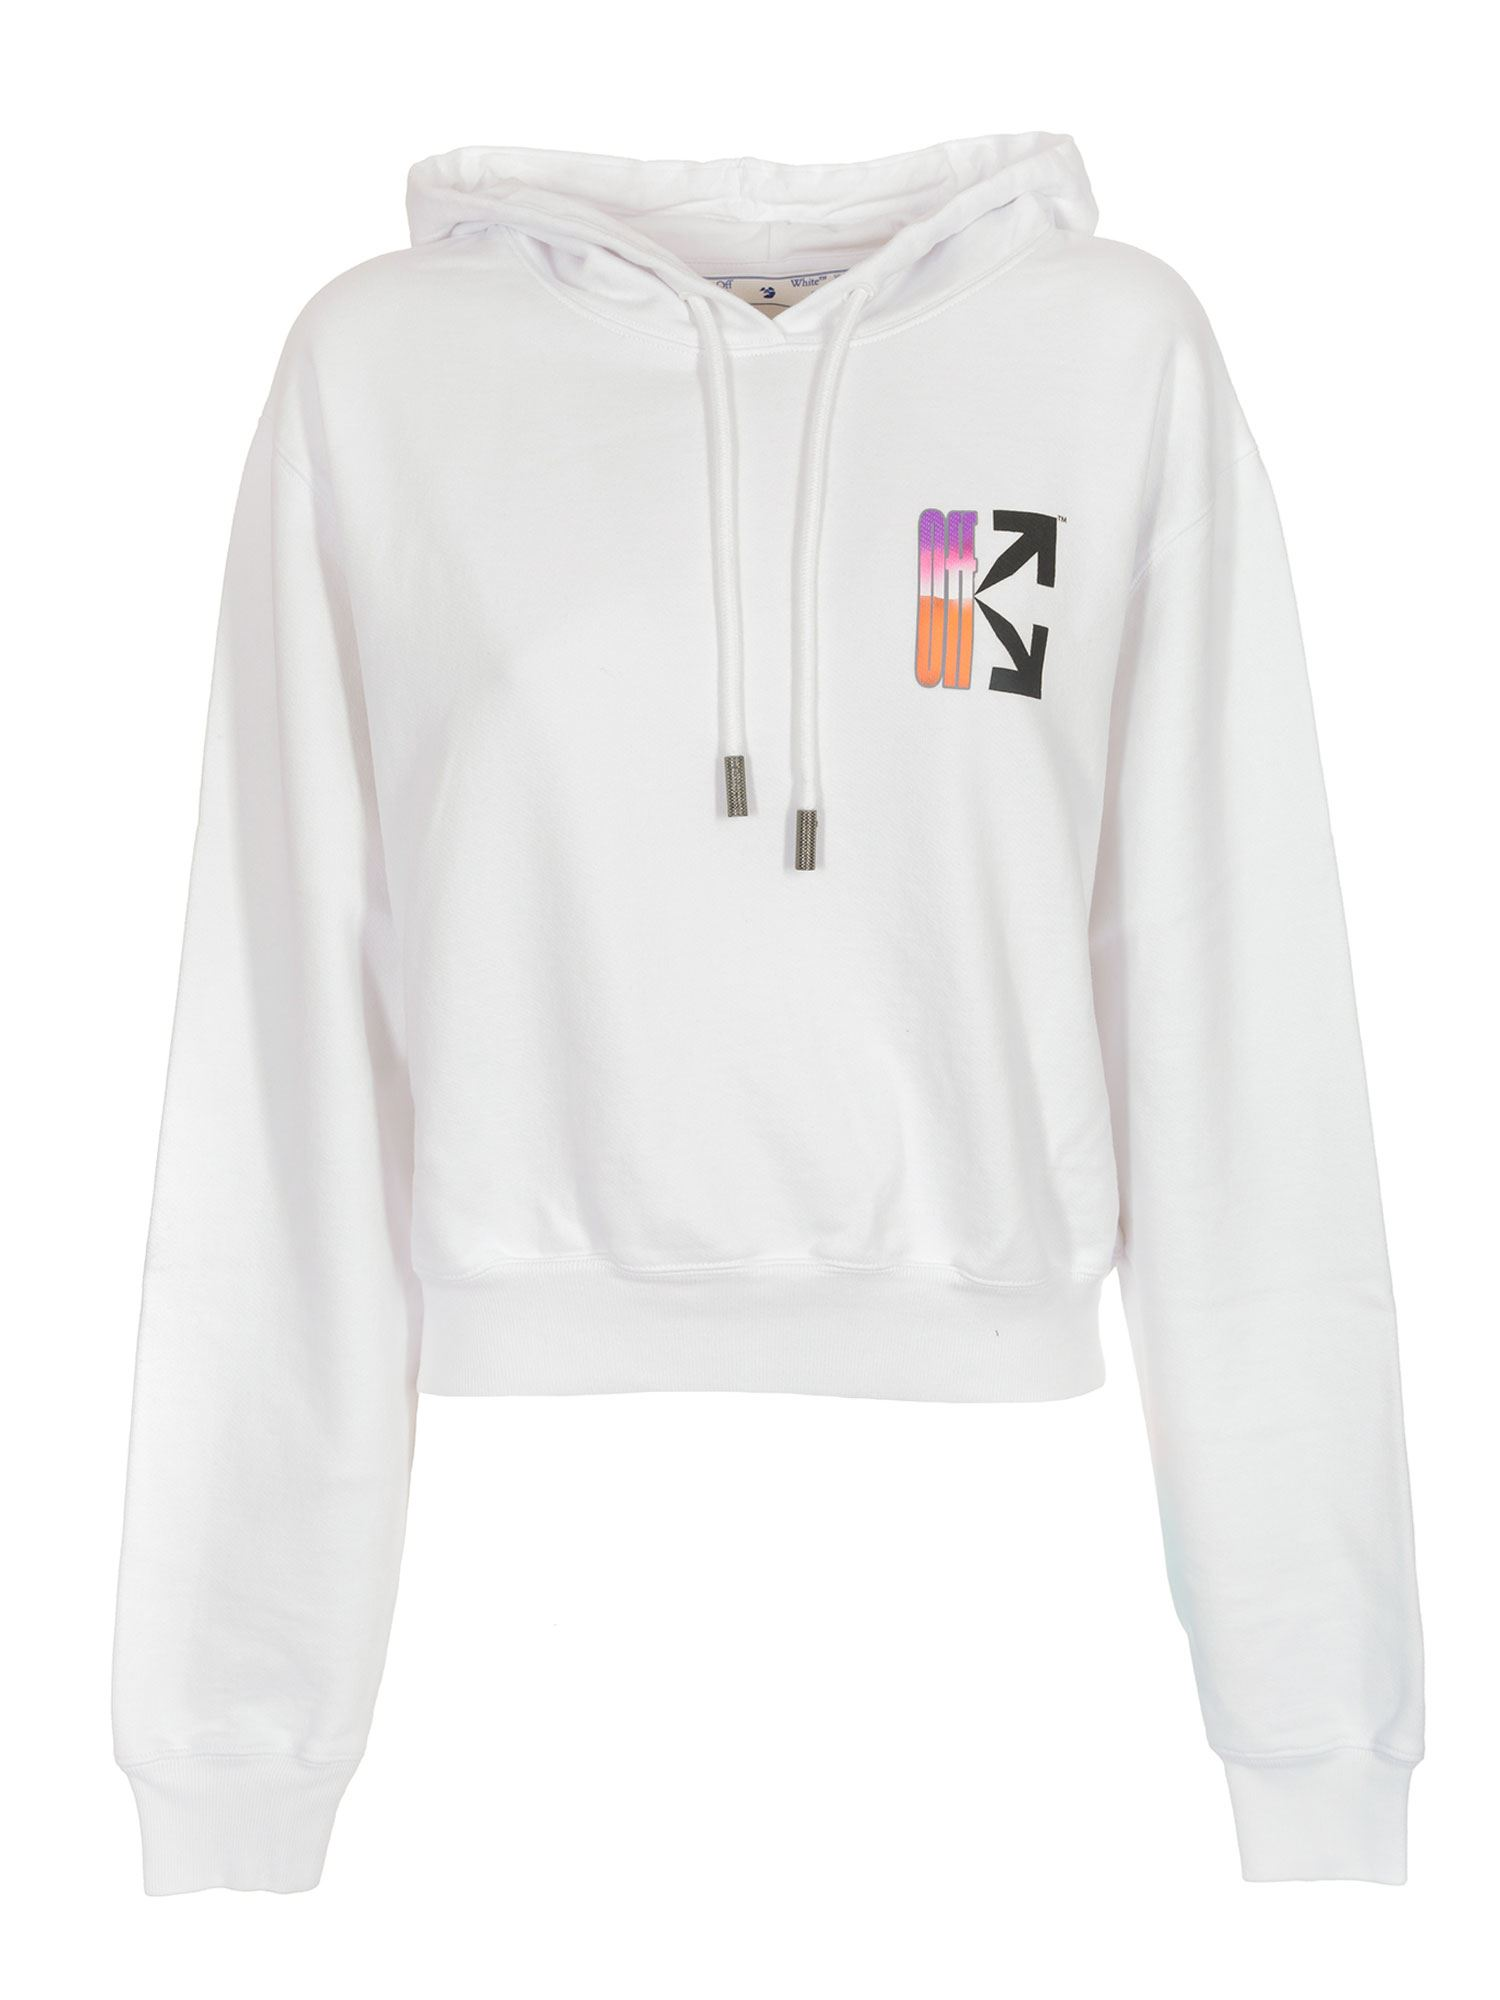 OFF-WHITE GRADIENT CROP HOODIE IN WHITE